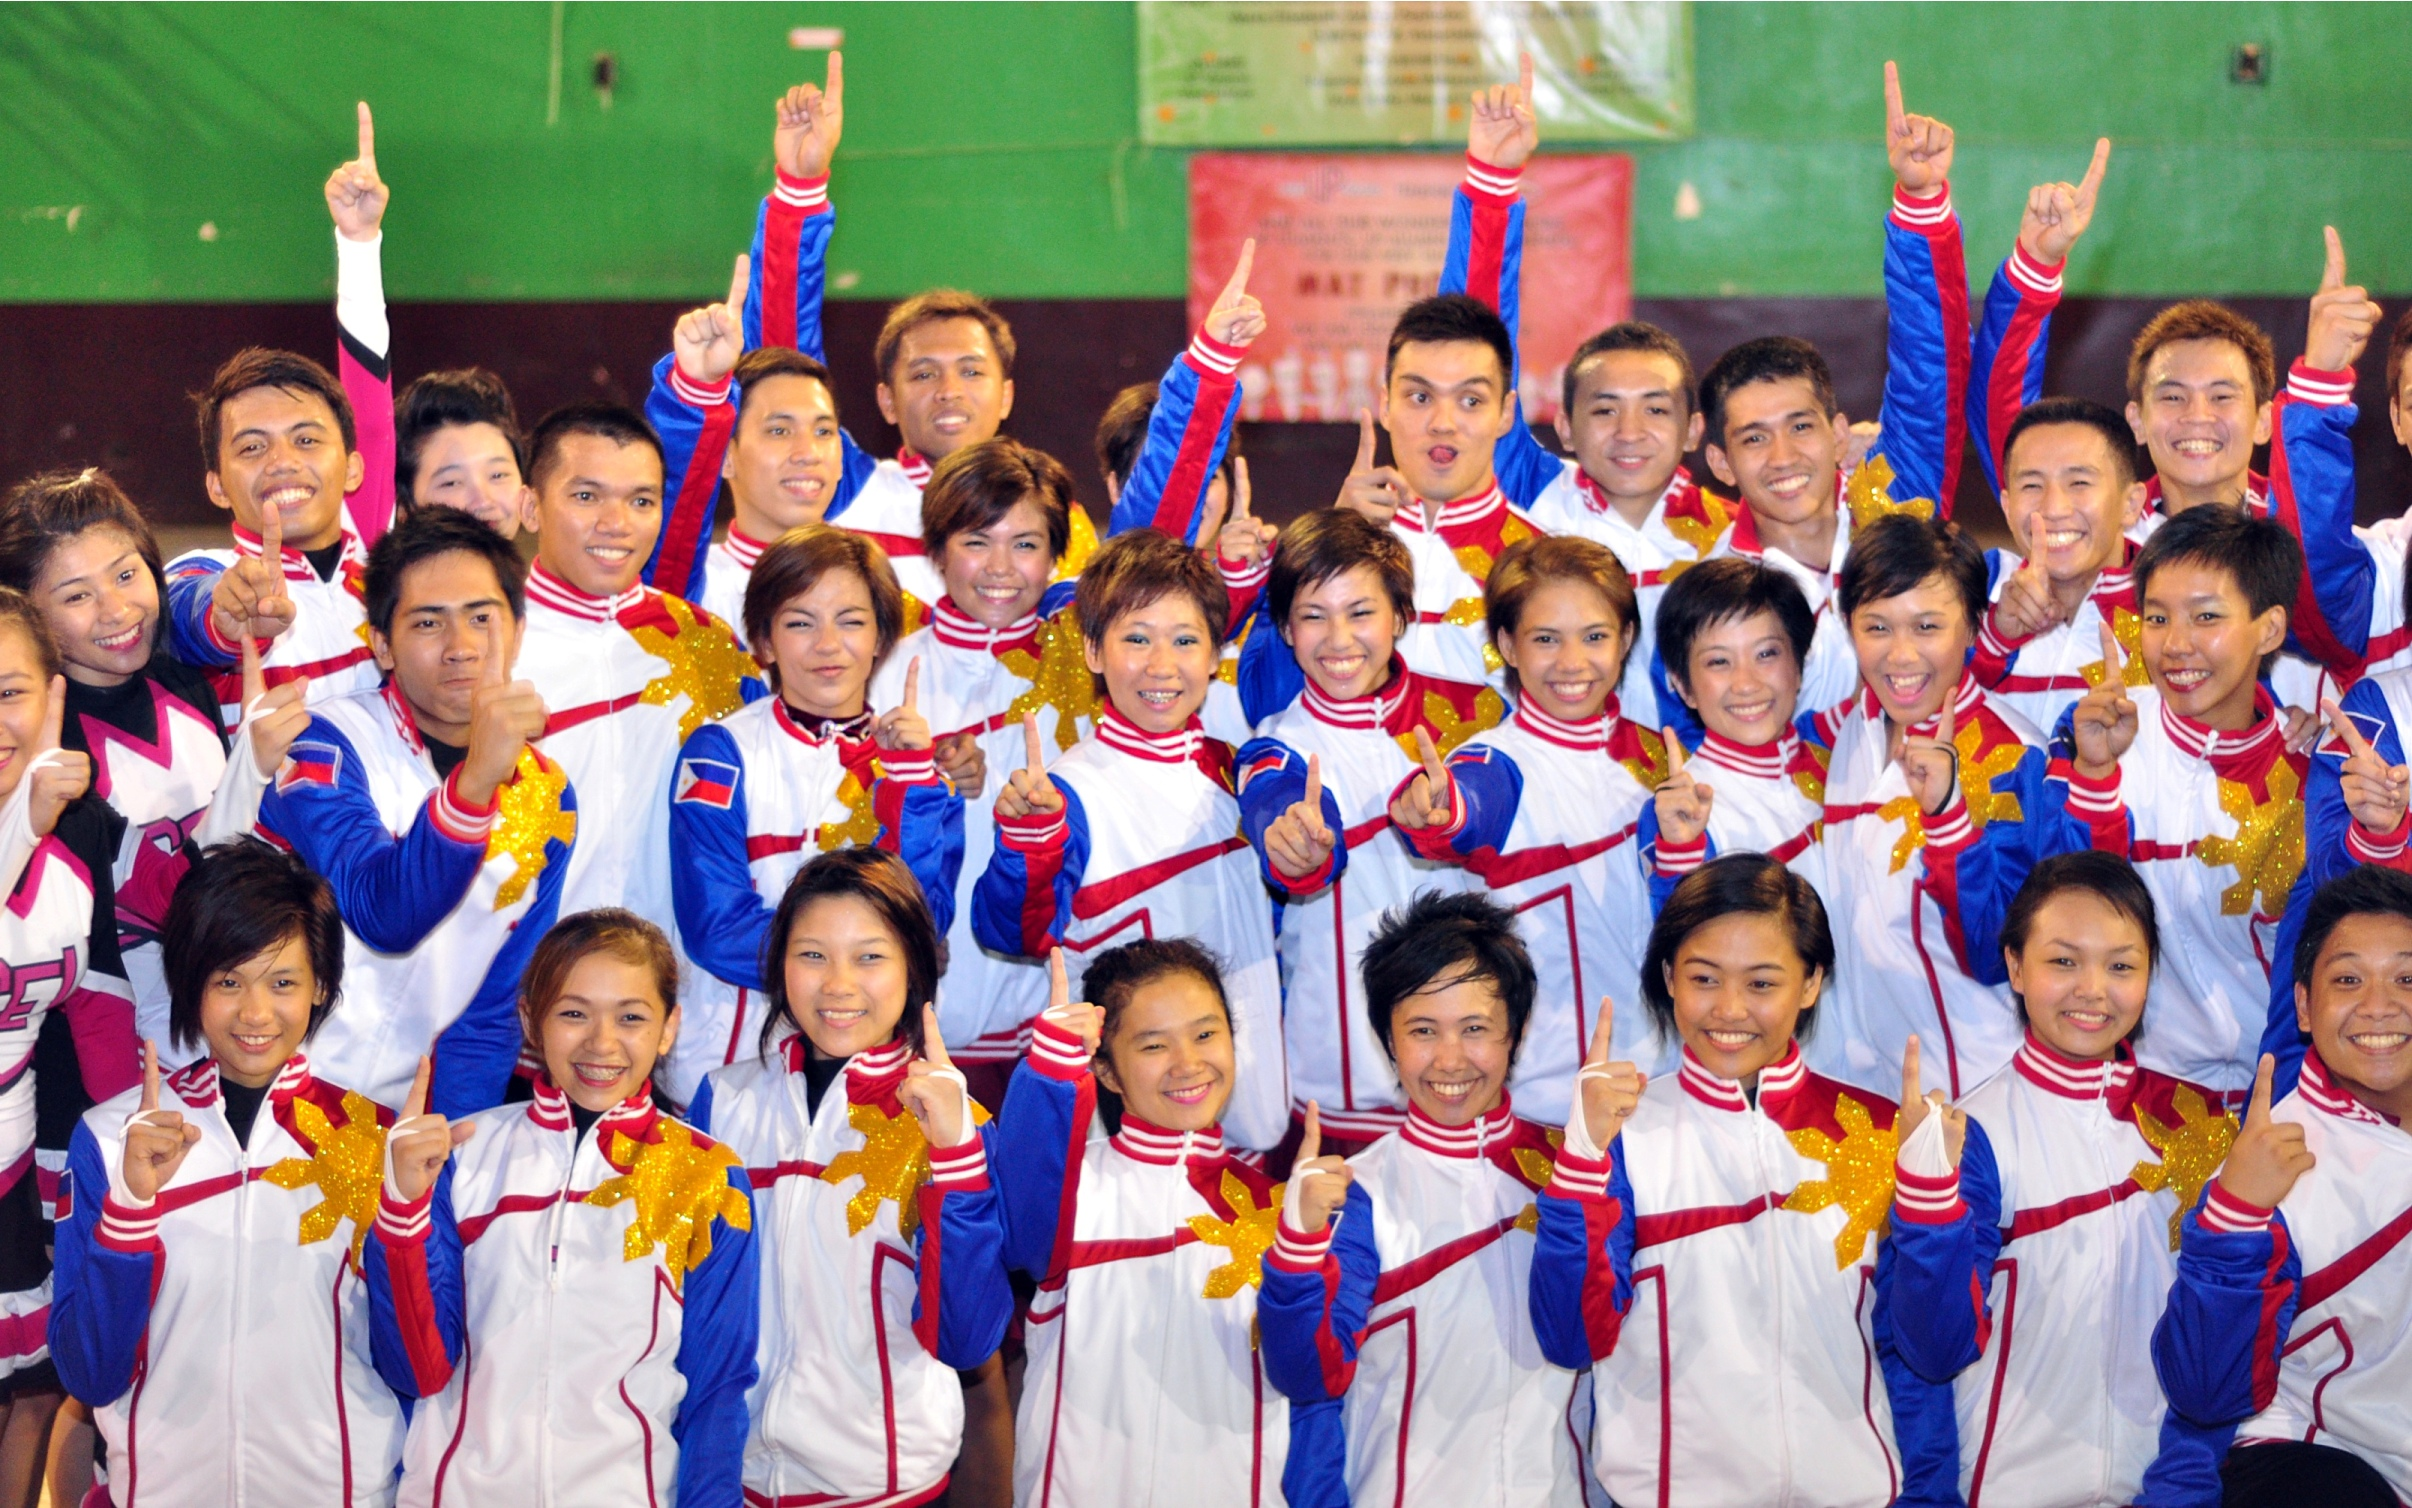 Team Philippines places third in world cheerleading tilt